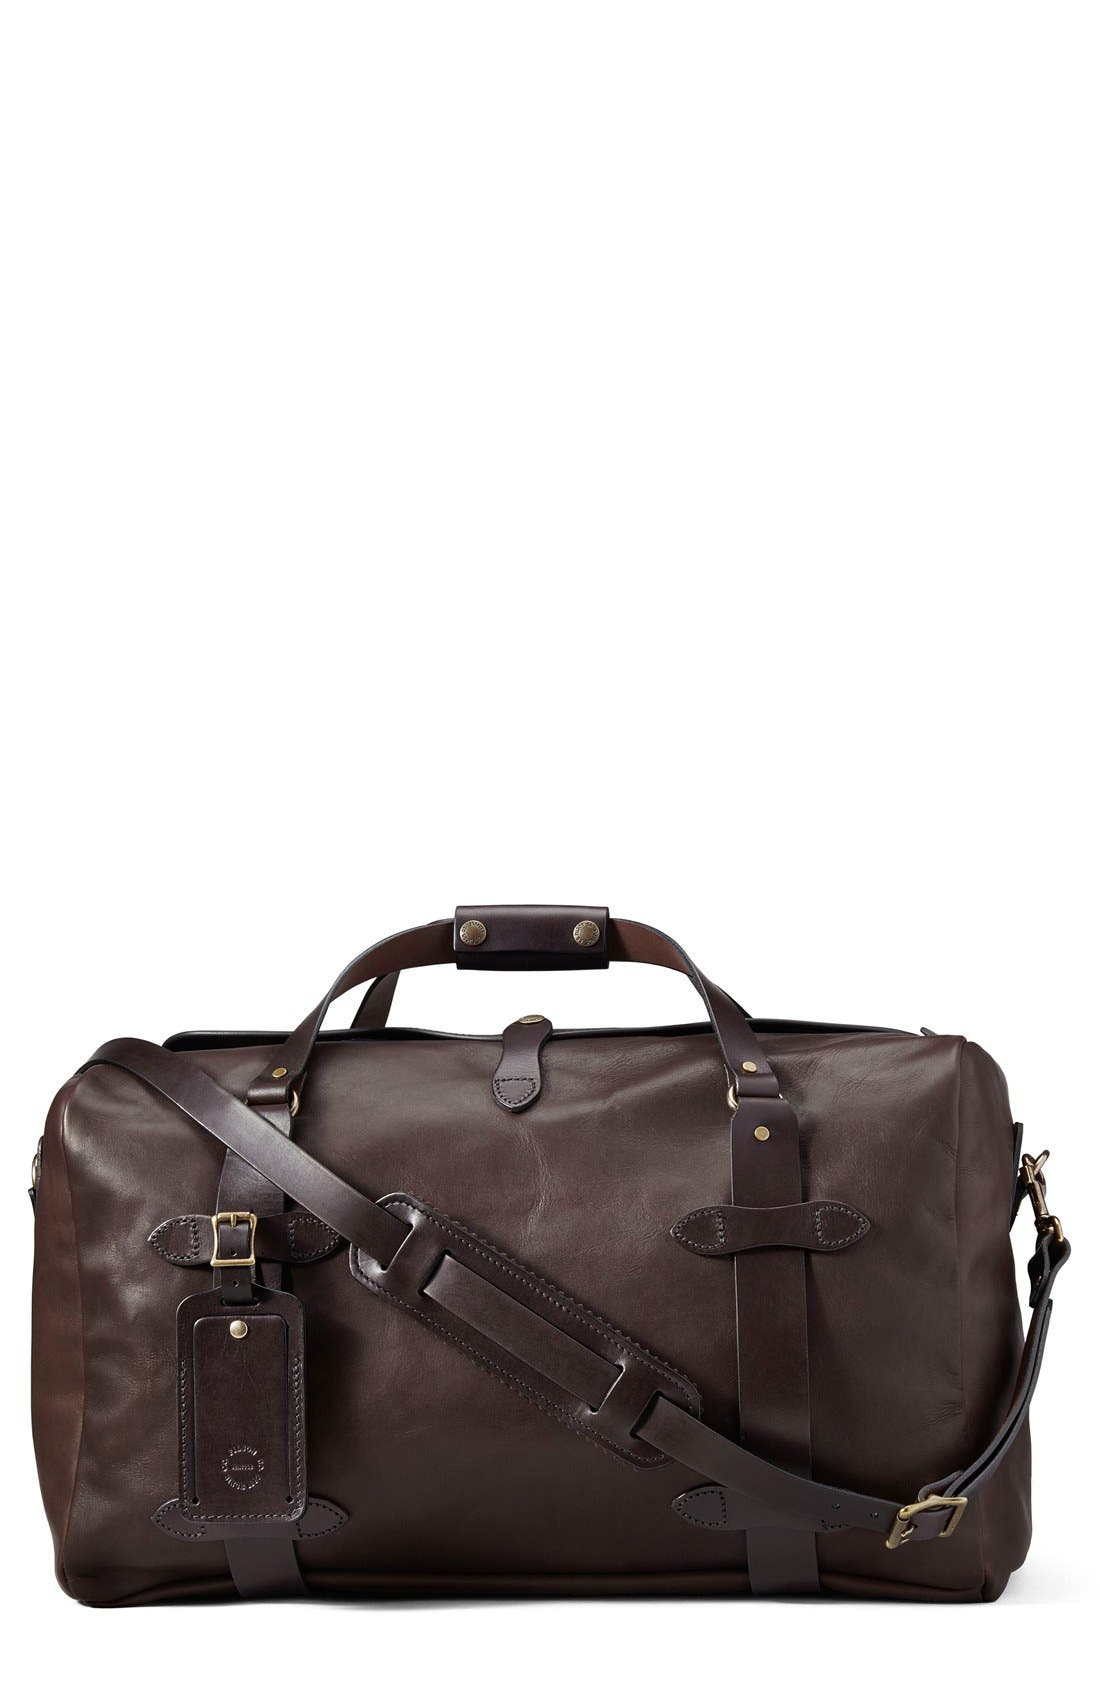 Weatherproof Leather Duffel Bag,                             Main thumbnail 1, color,